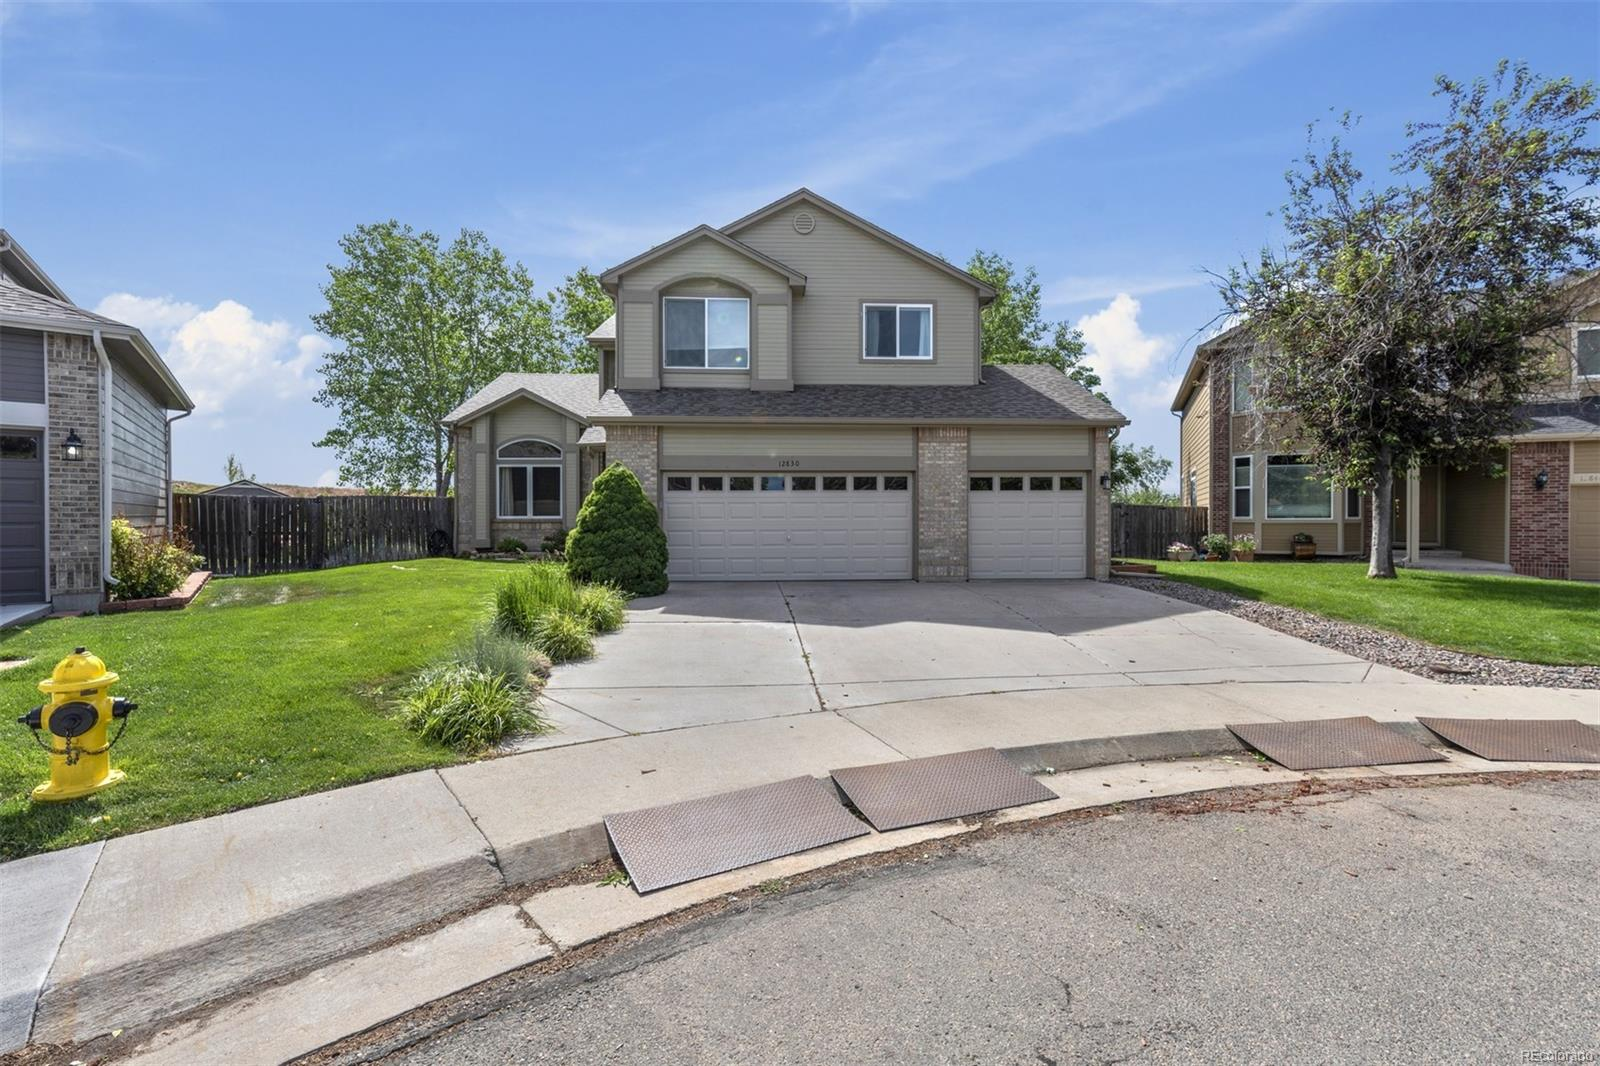 12830 55th Place, Arvada, CO 80002 - Arvada, CO real estate listing